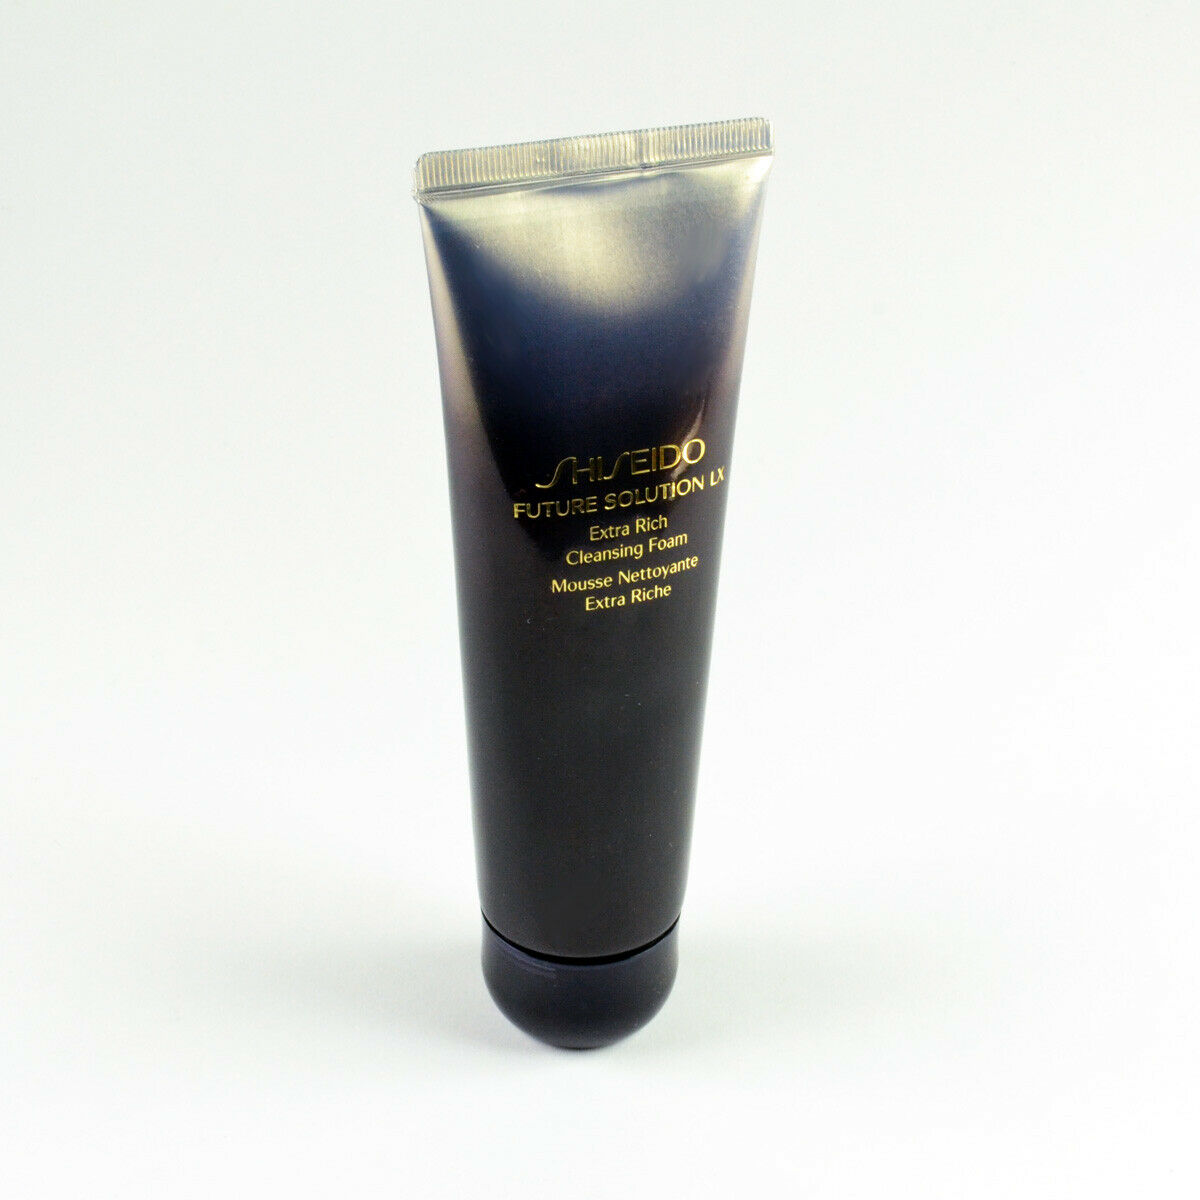 SHISEIDO by Shiseido Future Solution LX Extra Rich Cleansing